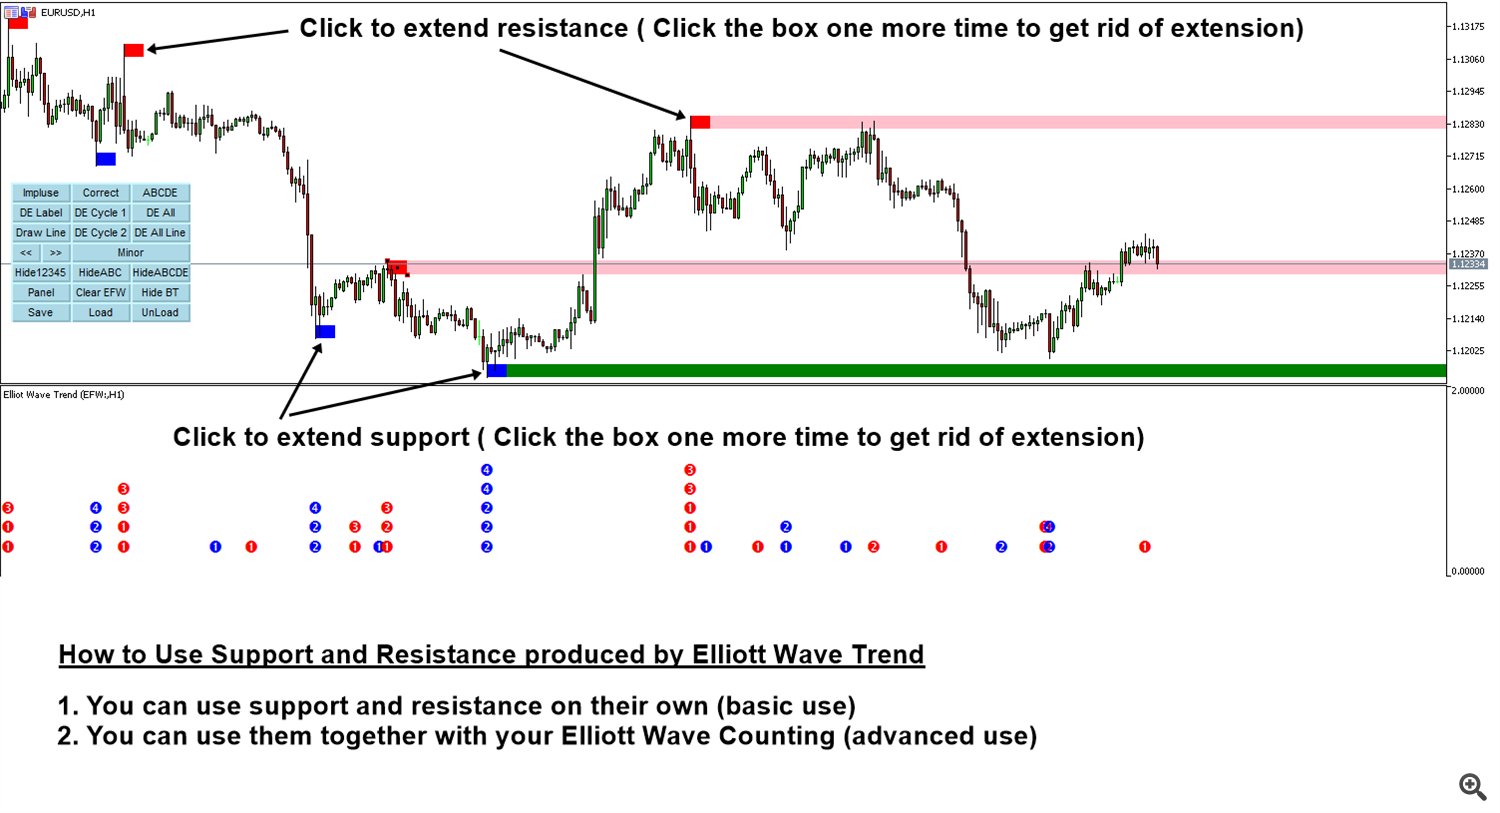 Elliott Wave Trend Support and Resistance Zone 1